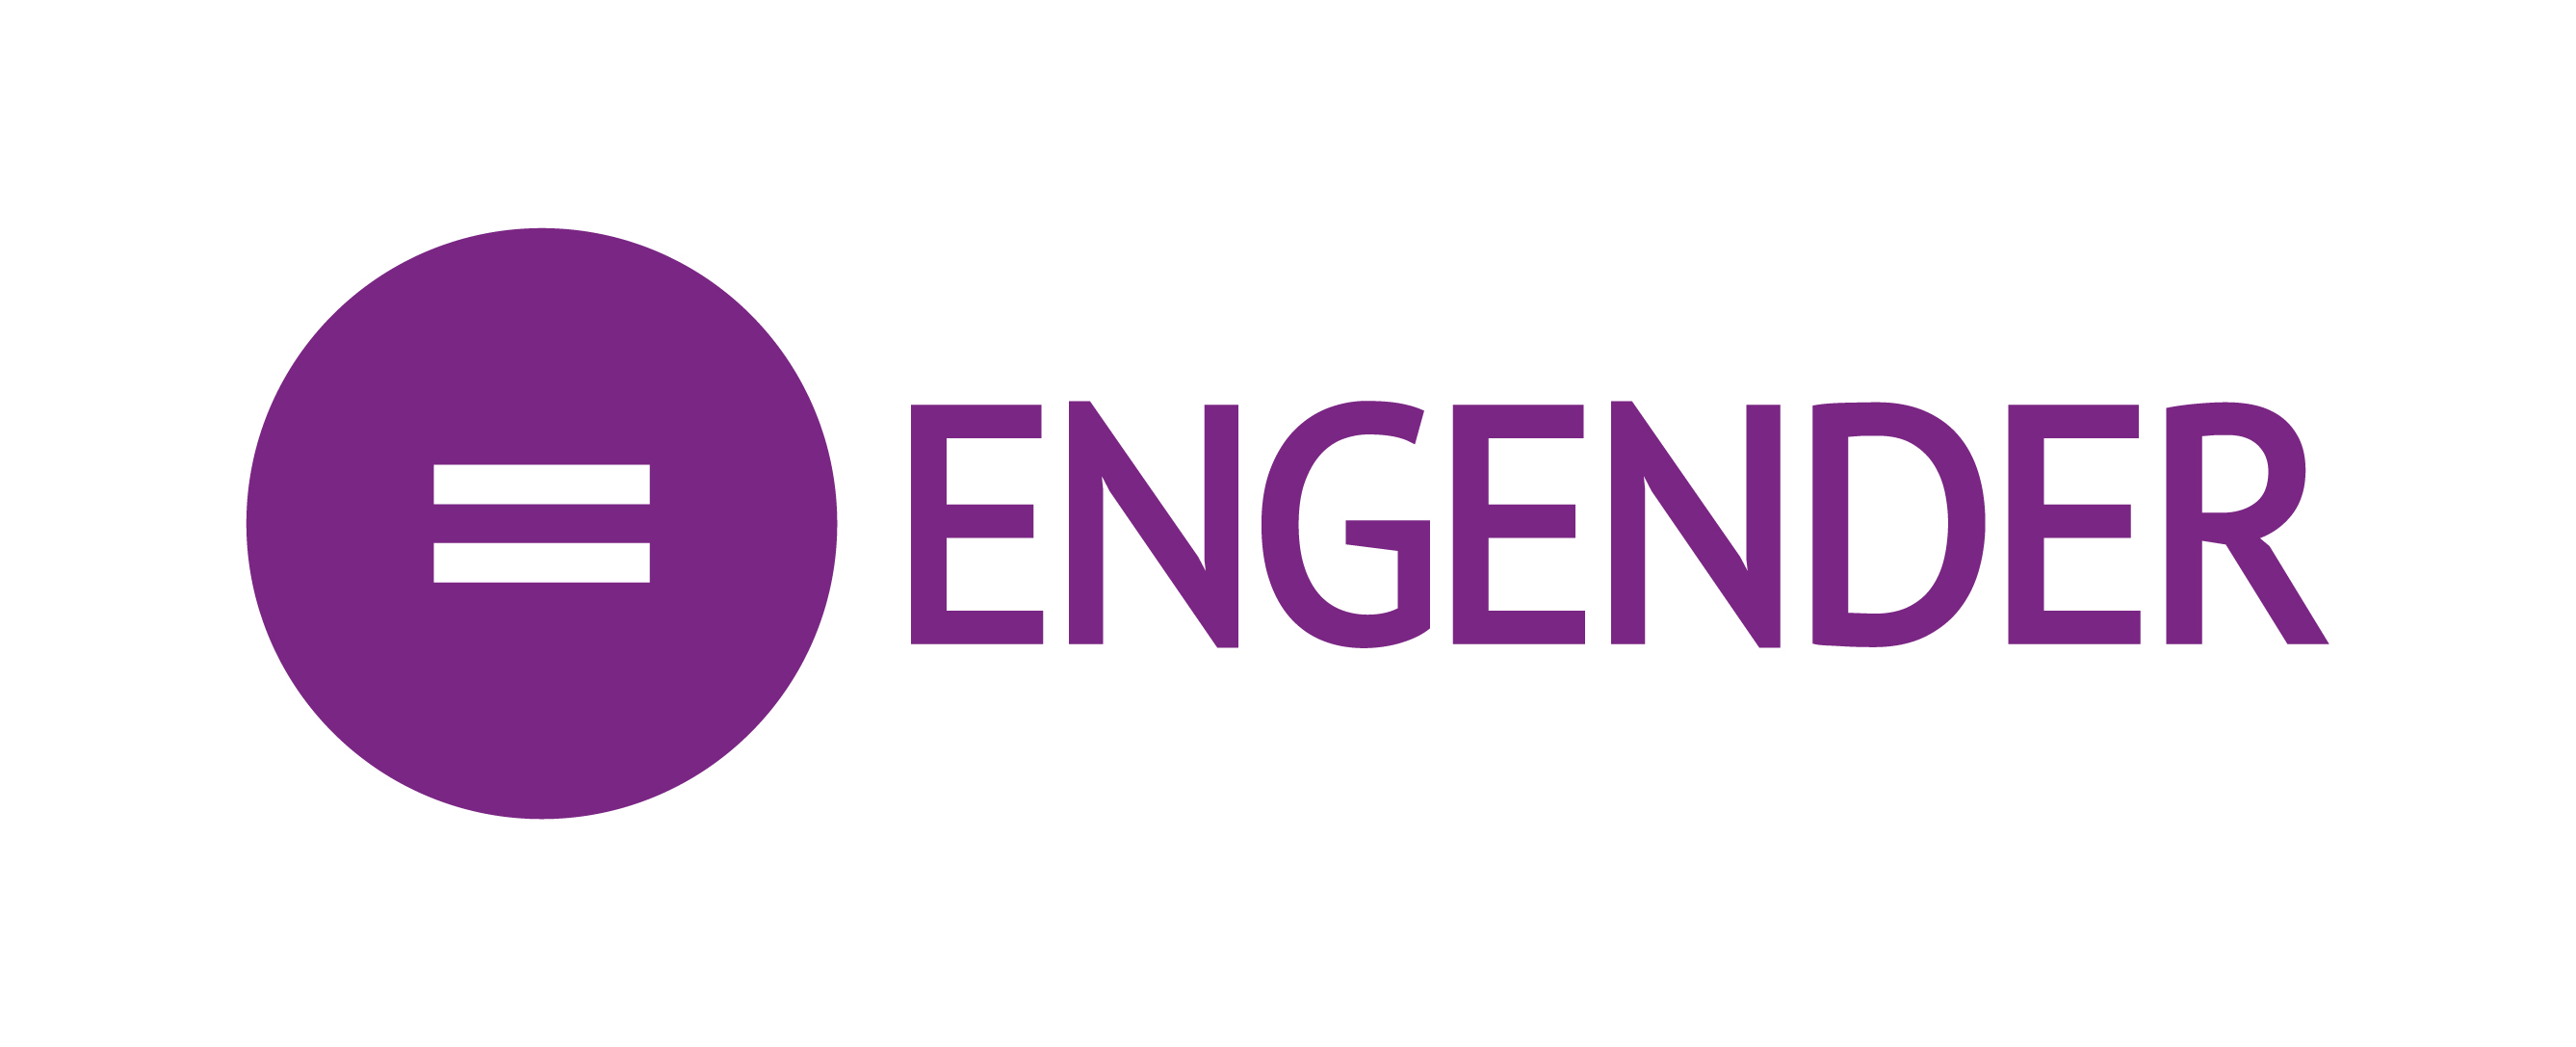 Engender's logo is a purple circle with an equals